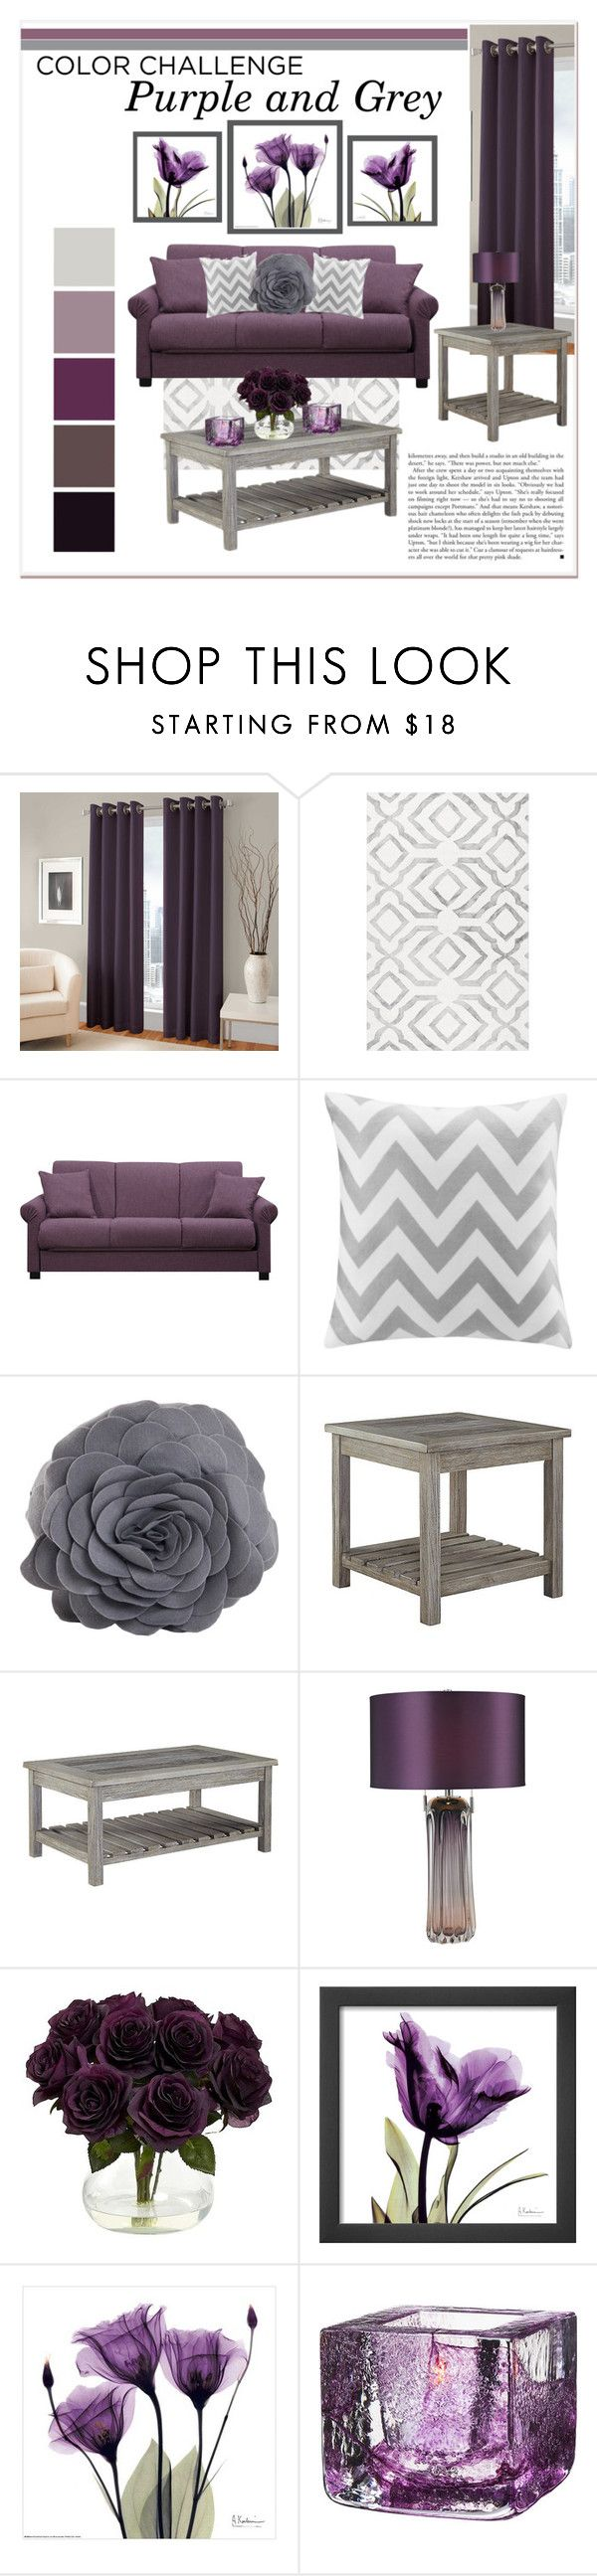 84 best Grey & Purple Interiors images on Pinterest | For the home ...